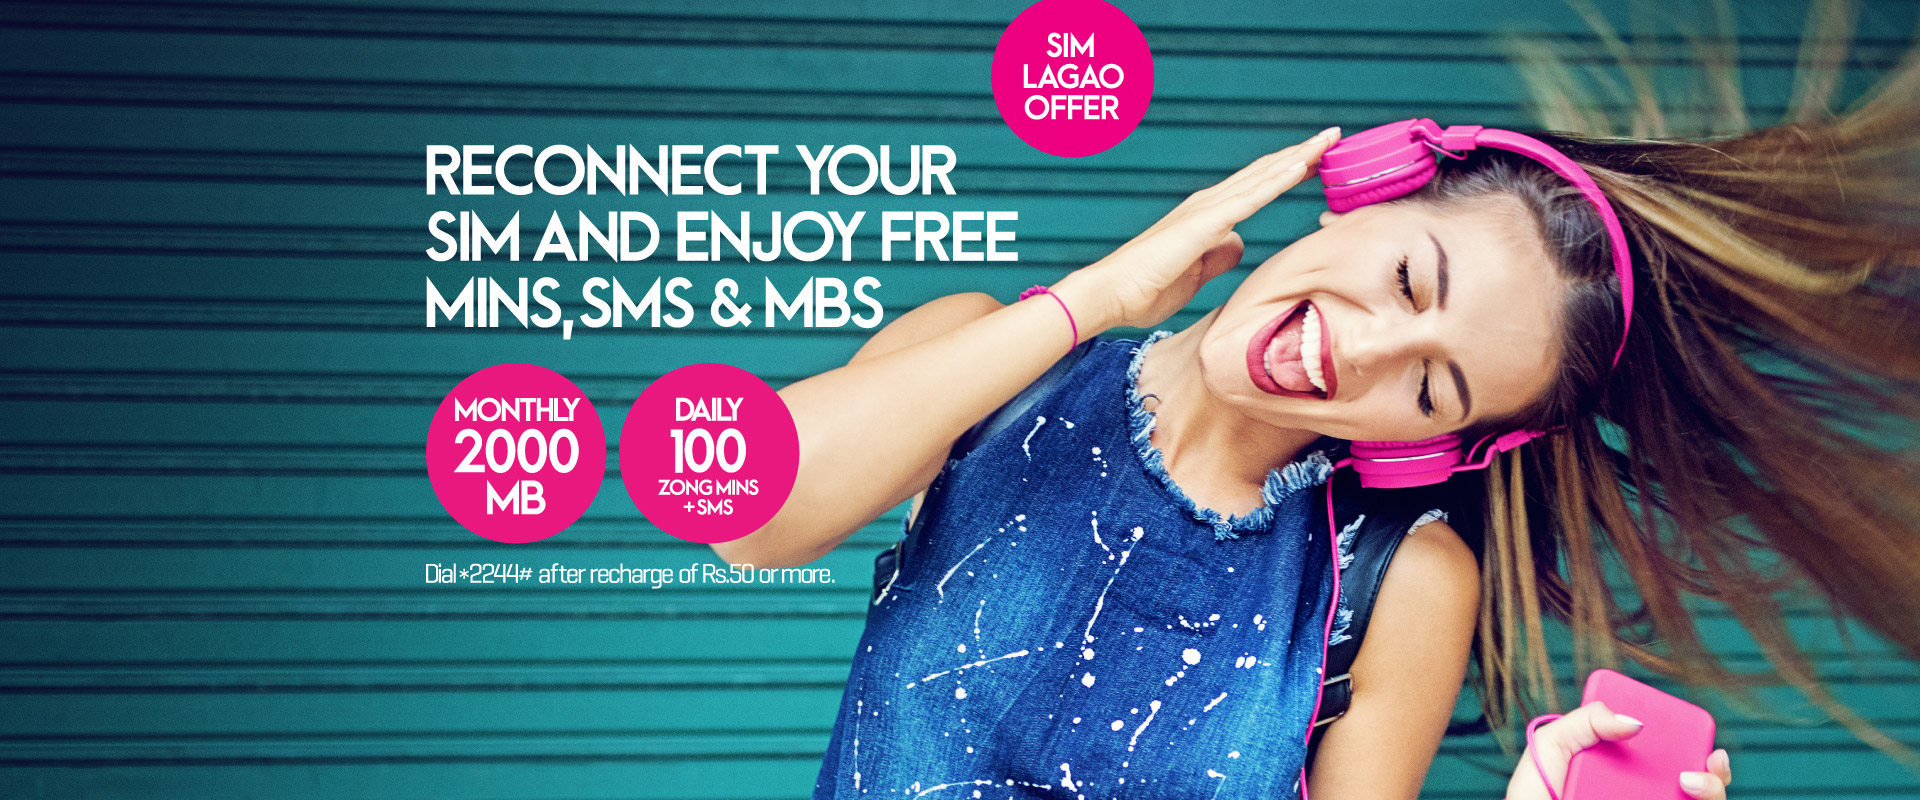 Zong Sim Lagao Offer 2019 Status Check Code